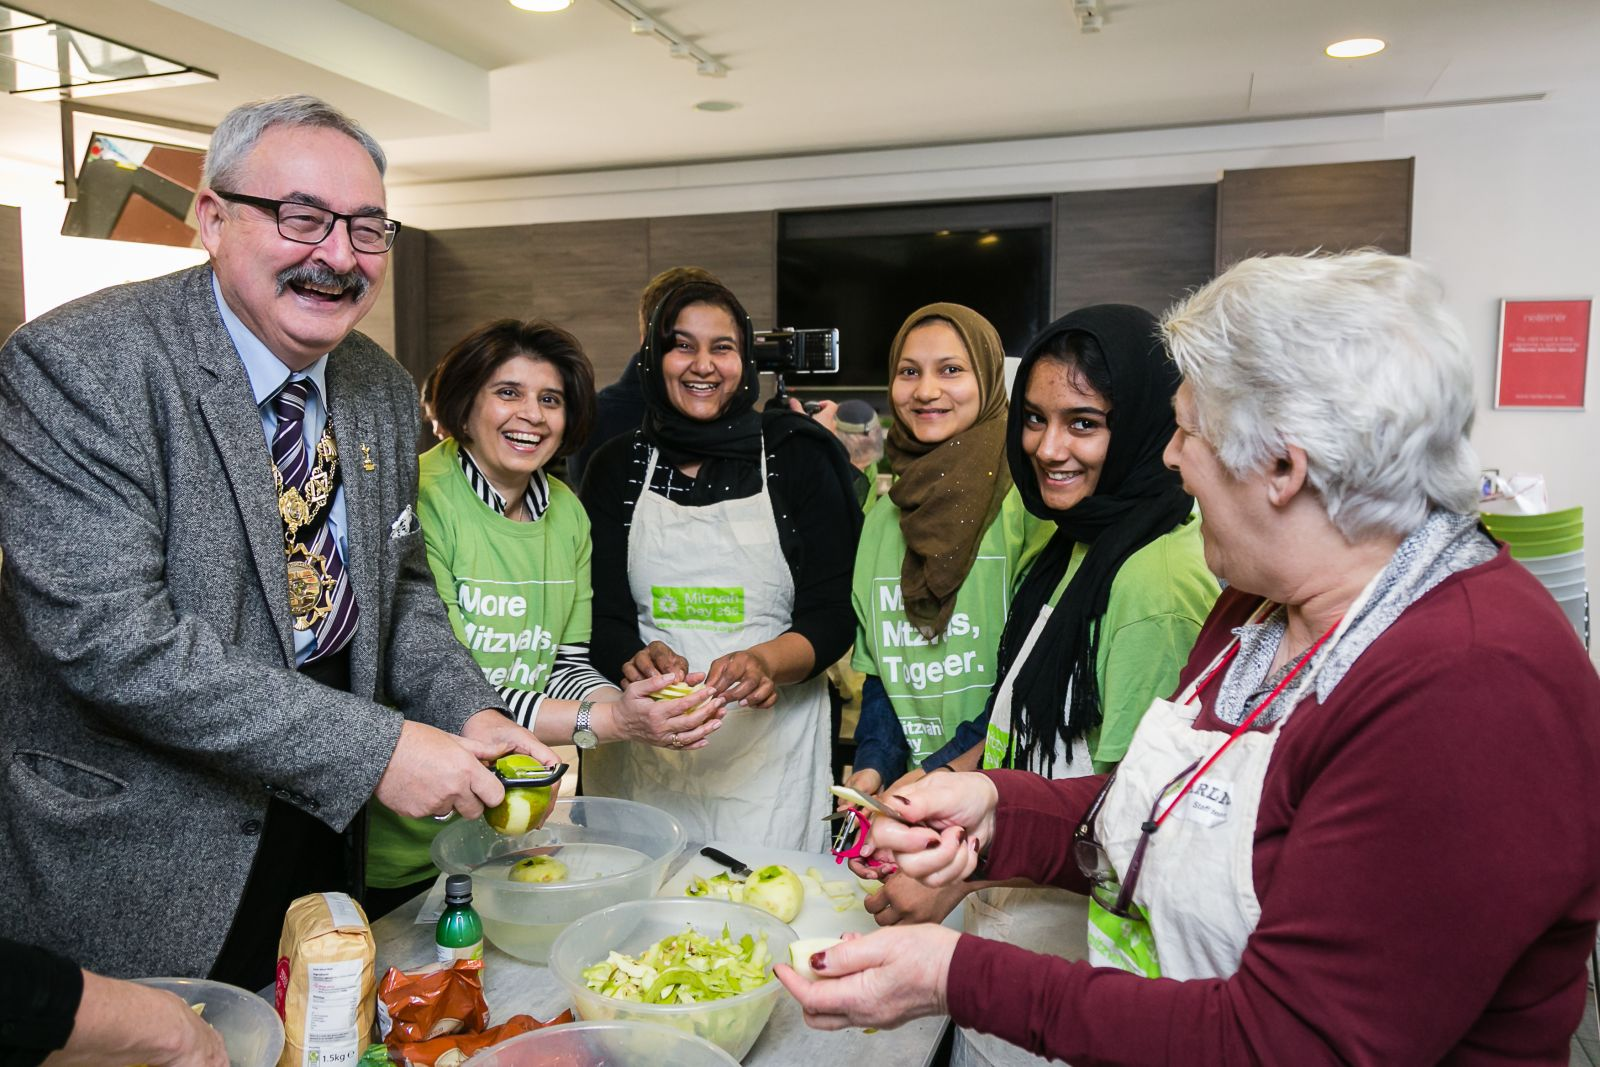 Mayor of Camden cooking for the homeless with Mitzvah Day founder Laura Marks and Jewish and Muslim volunteers at JW3 - picture by Yakir Zur